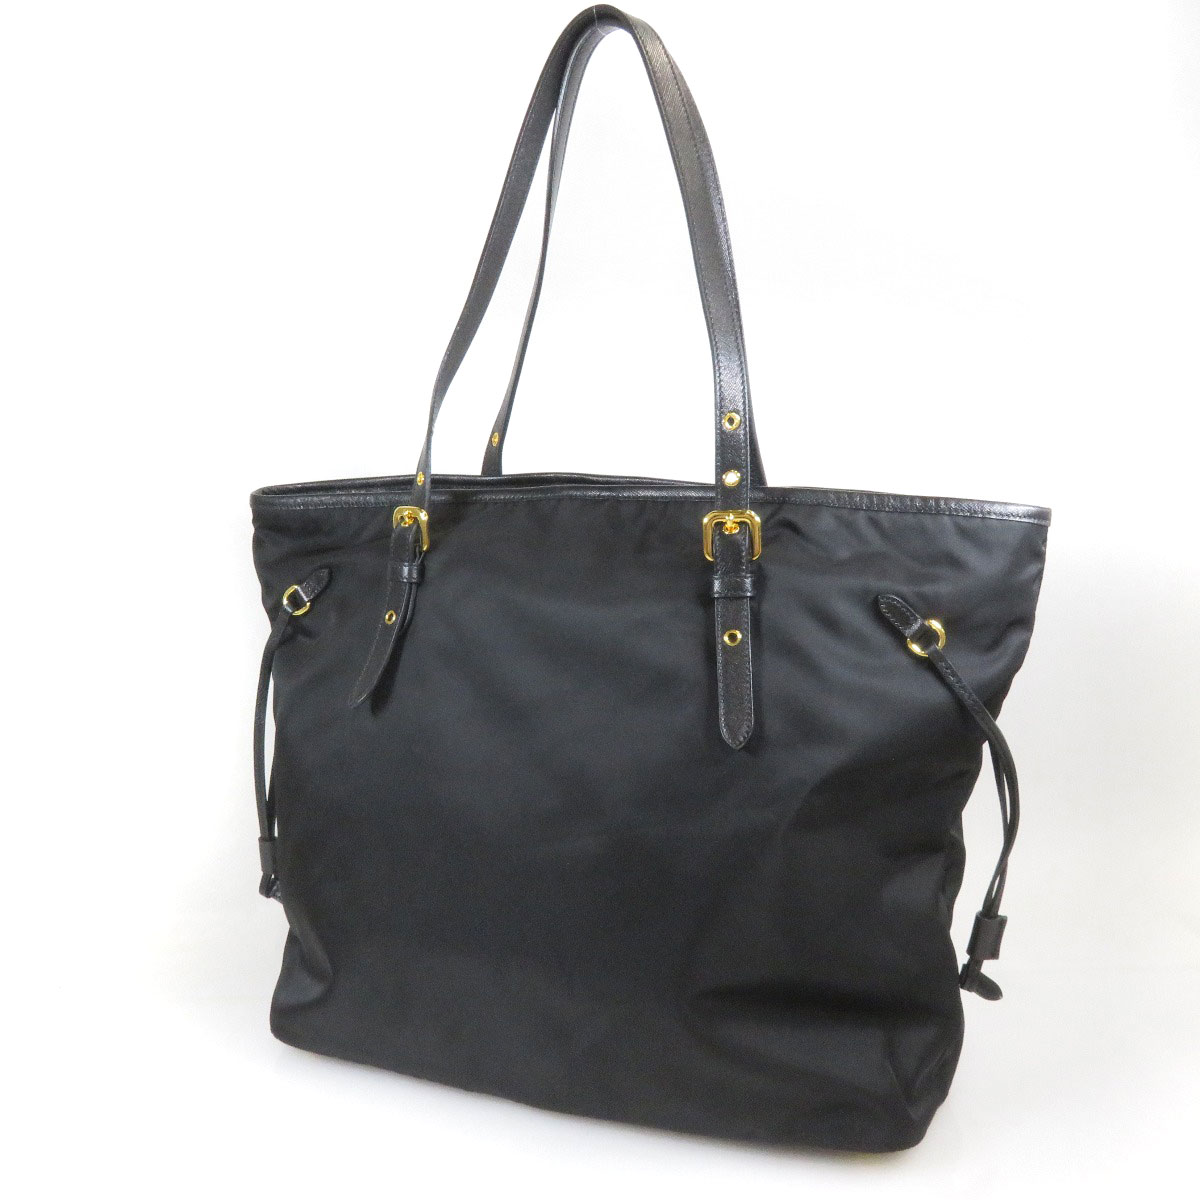 Authentic PRADA  BR4997 tote bag Nylon